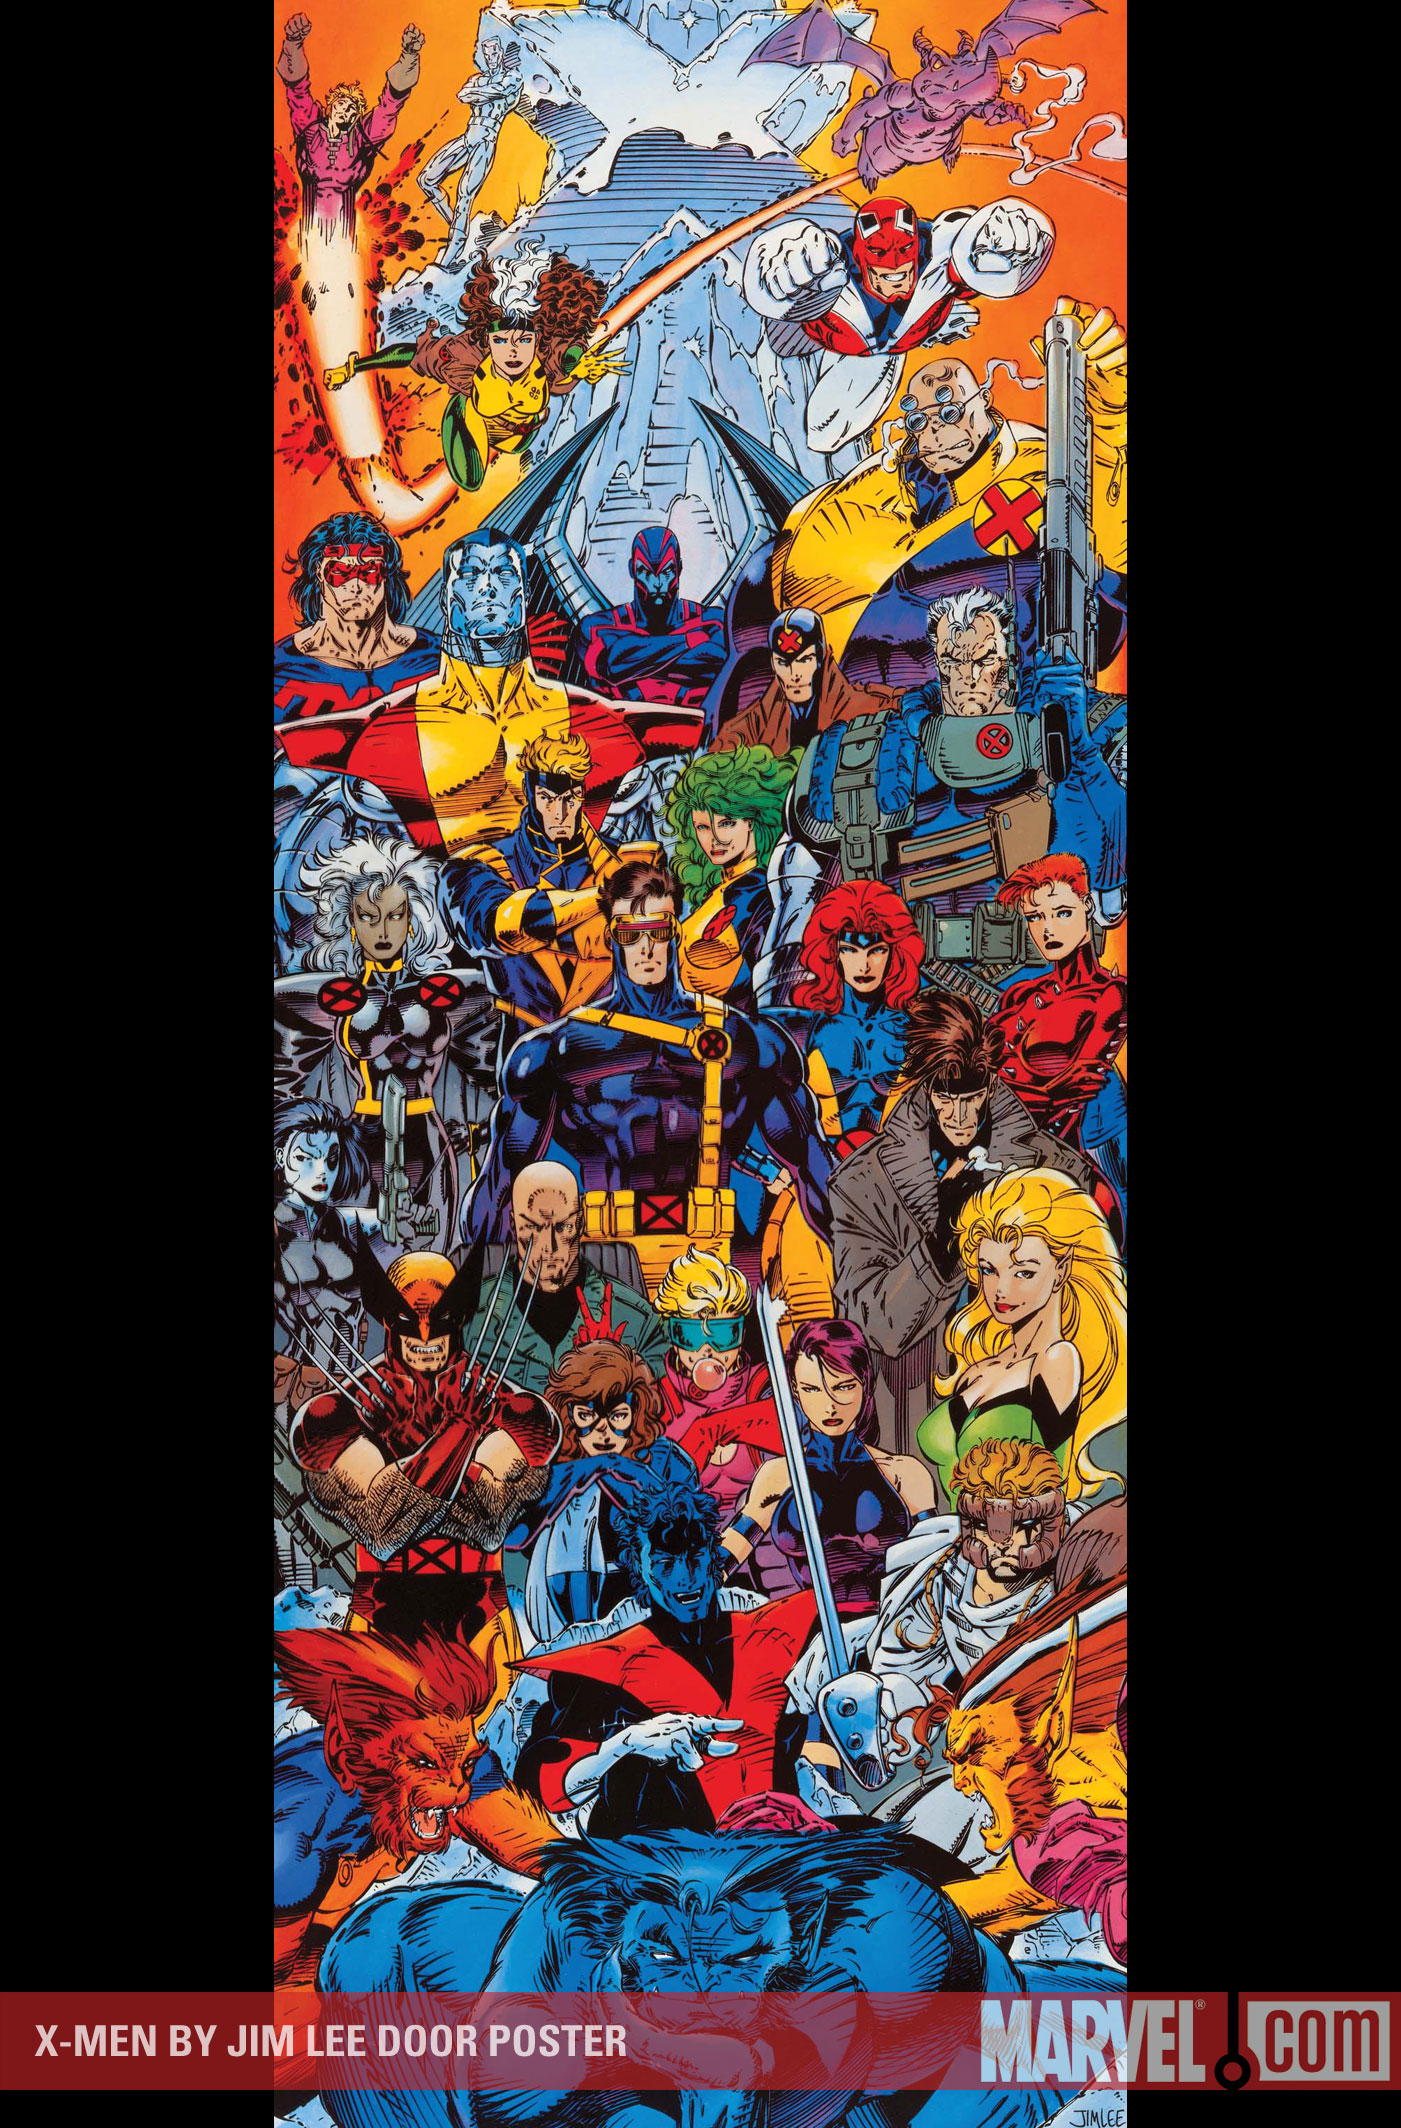 xmen jim lee poster